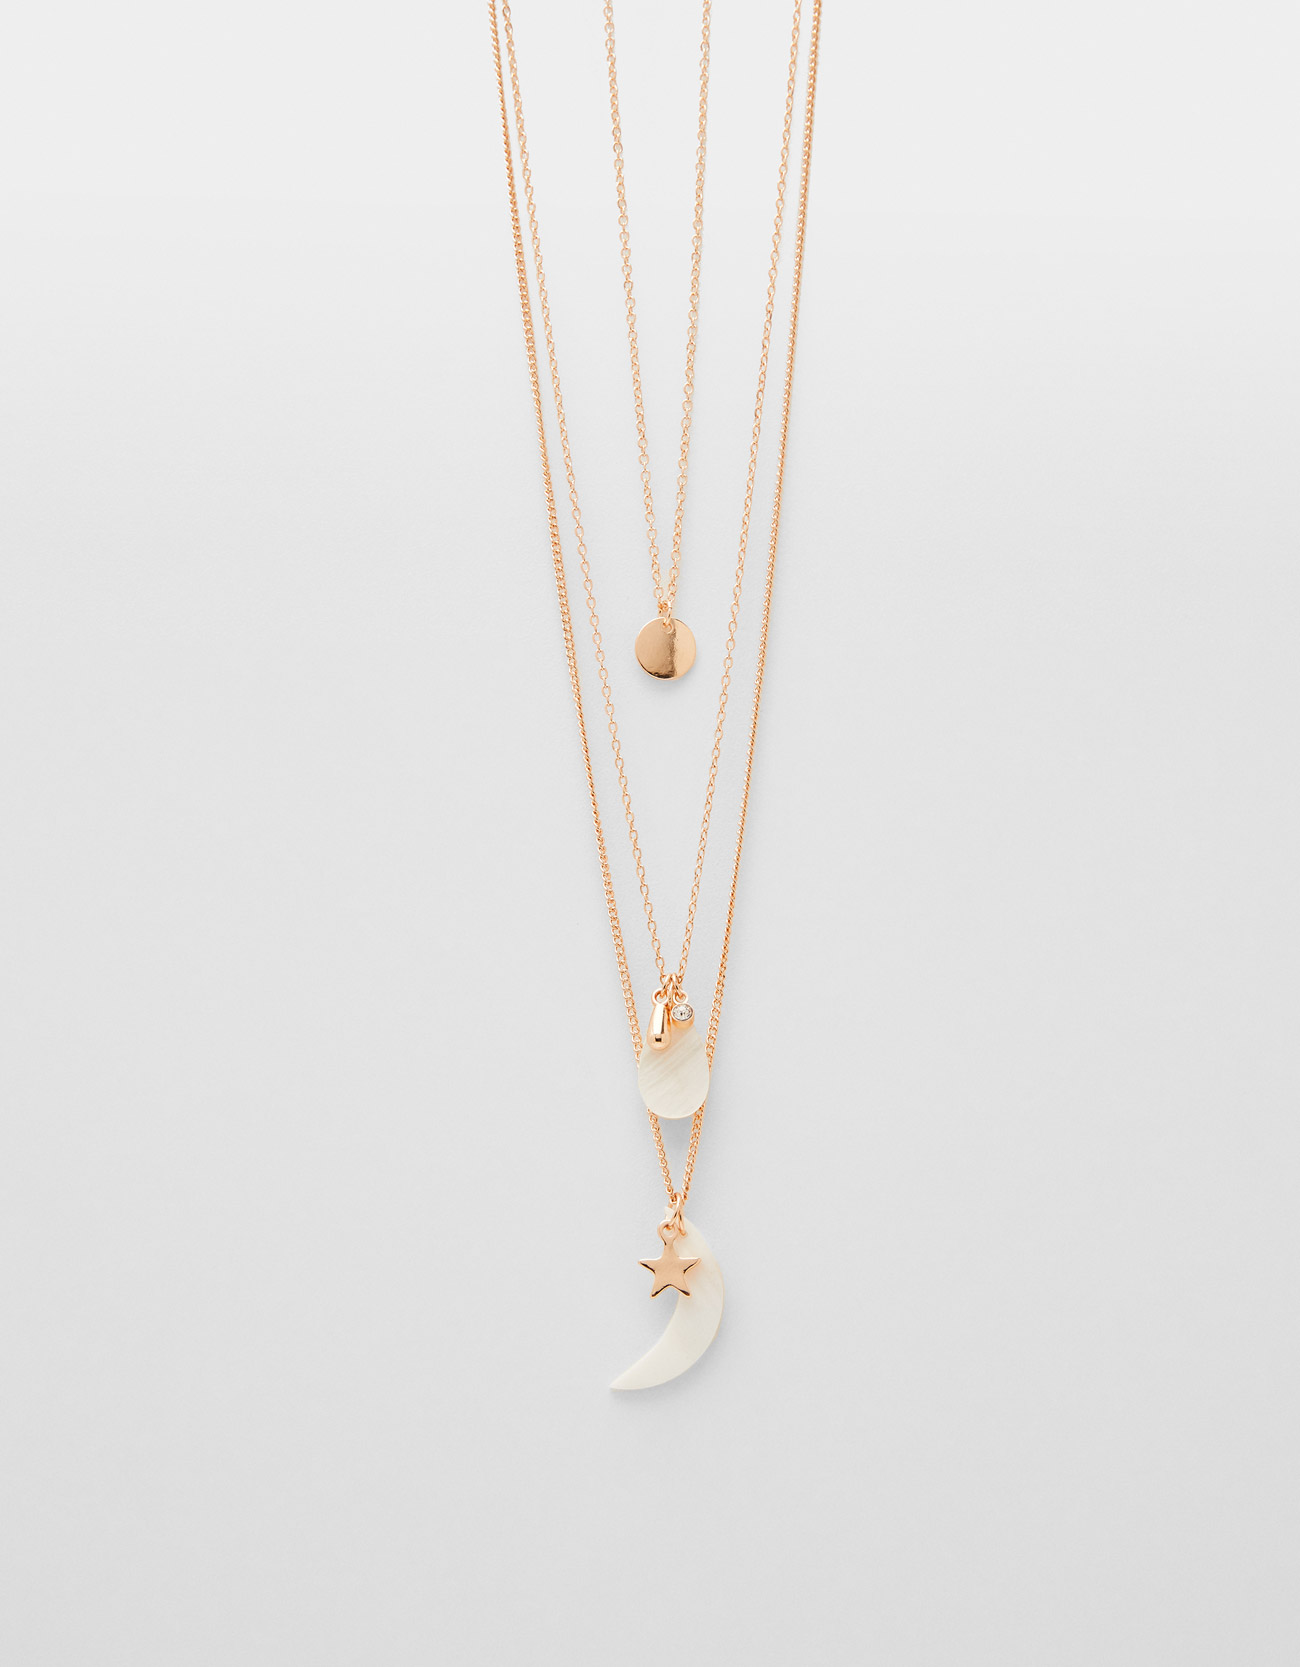 3c060571f0fbe Multi-strand chain necklace with mother-of-pearl pendant - CLOTHING -  Bershka Panama